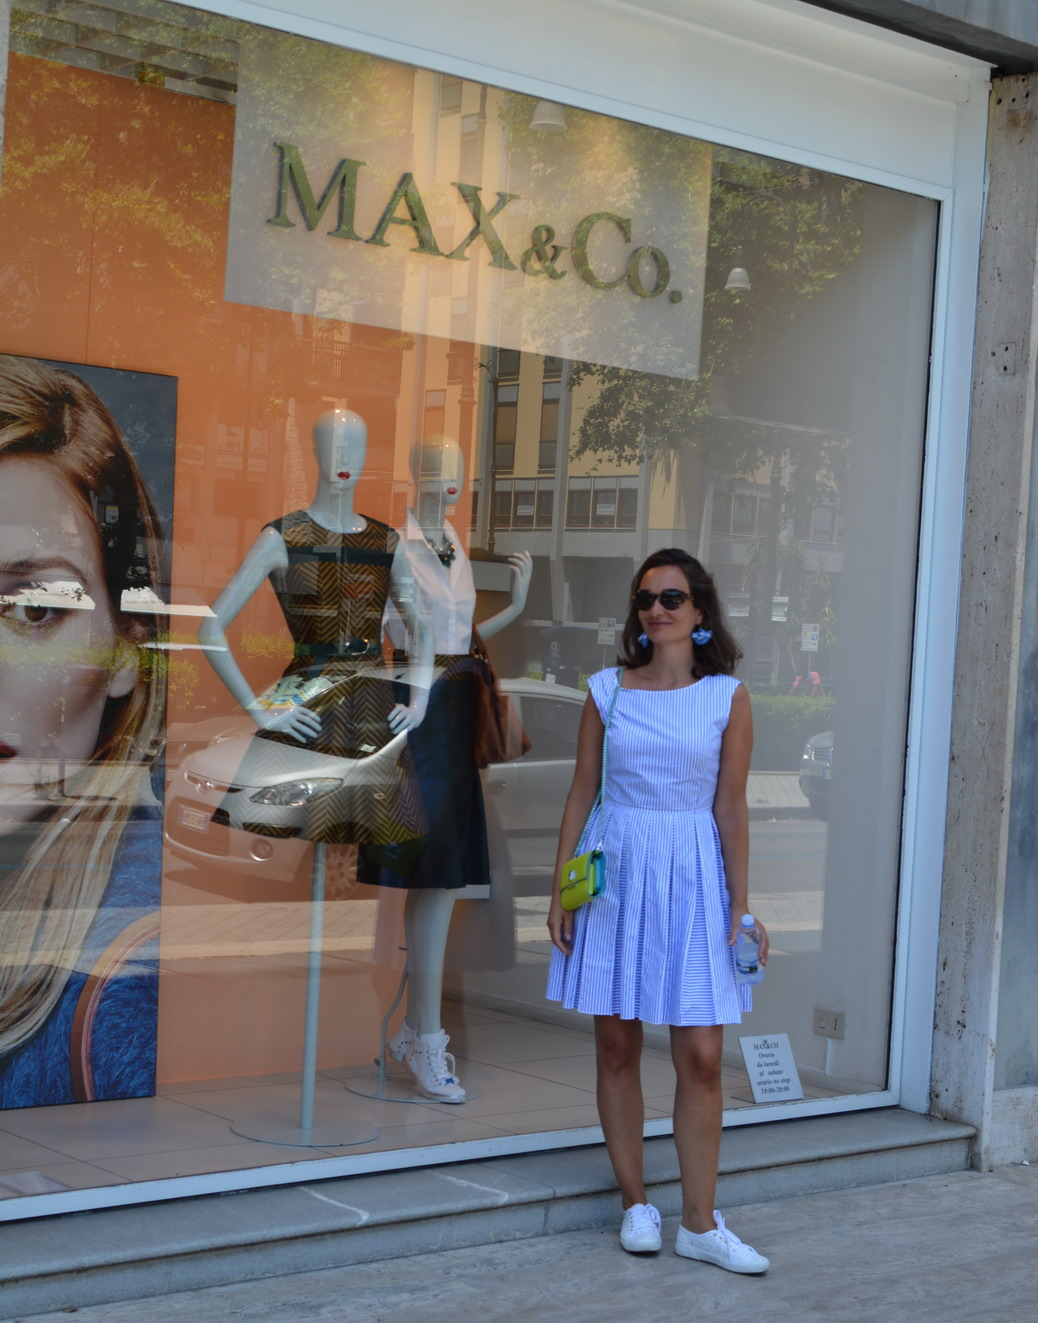 My favourite shop in Palermo!